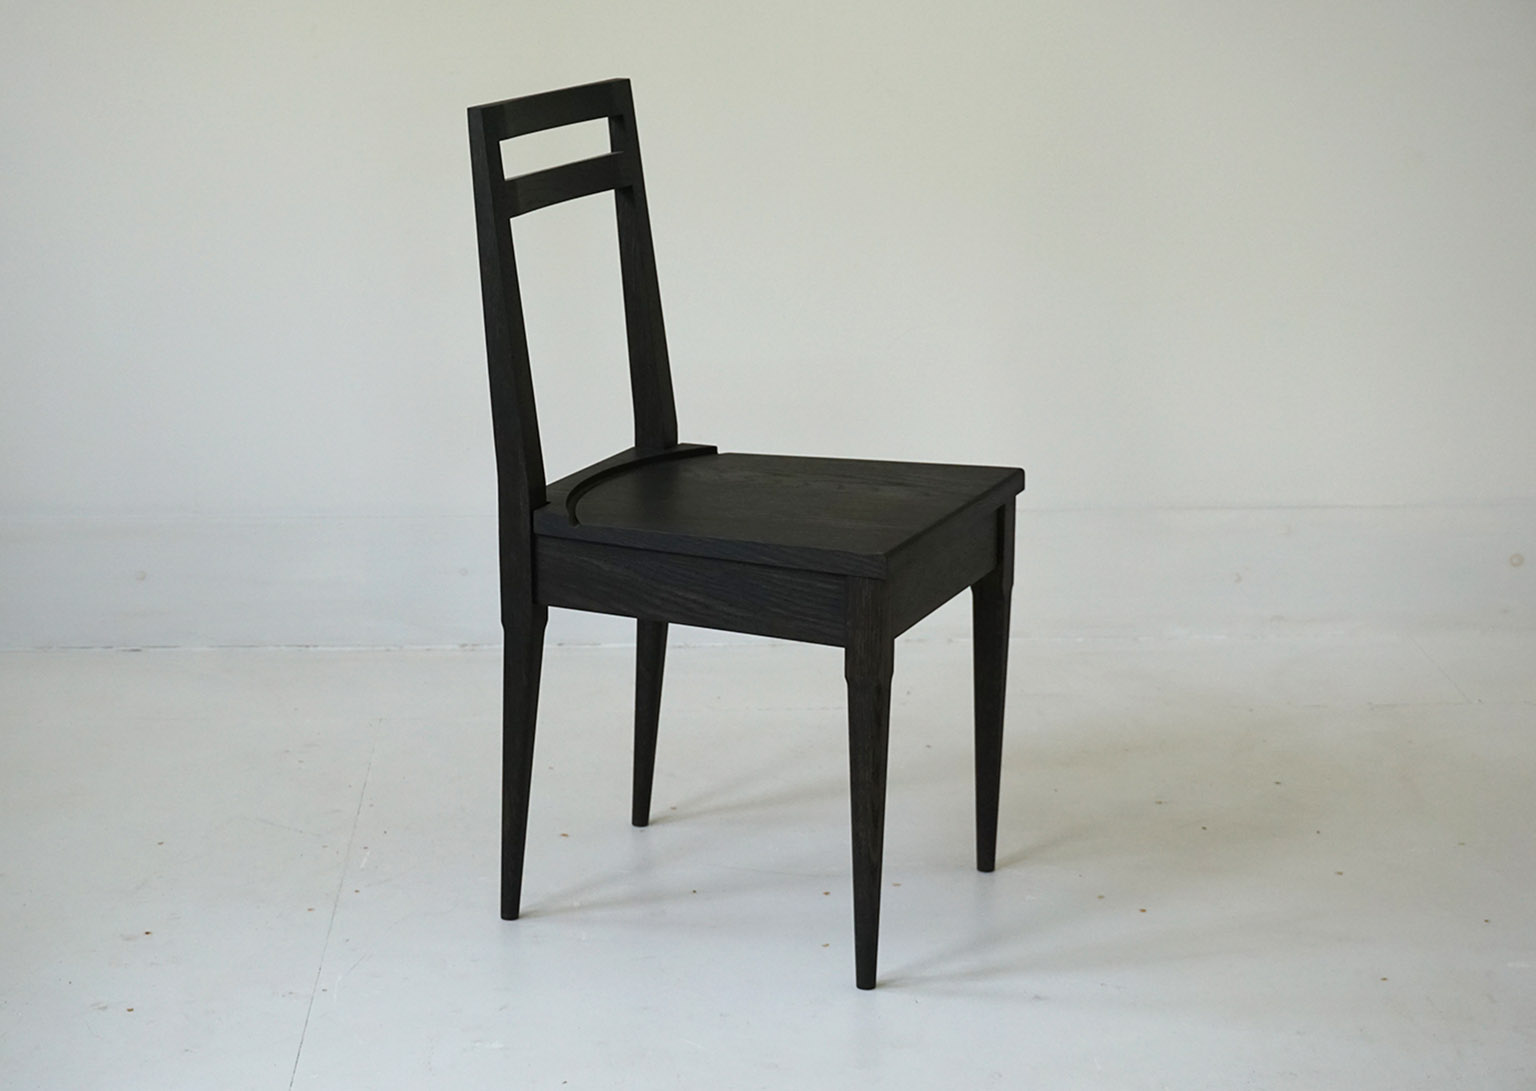 REUNION CHAIR